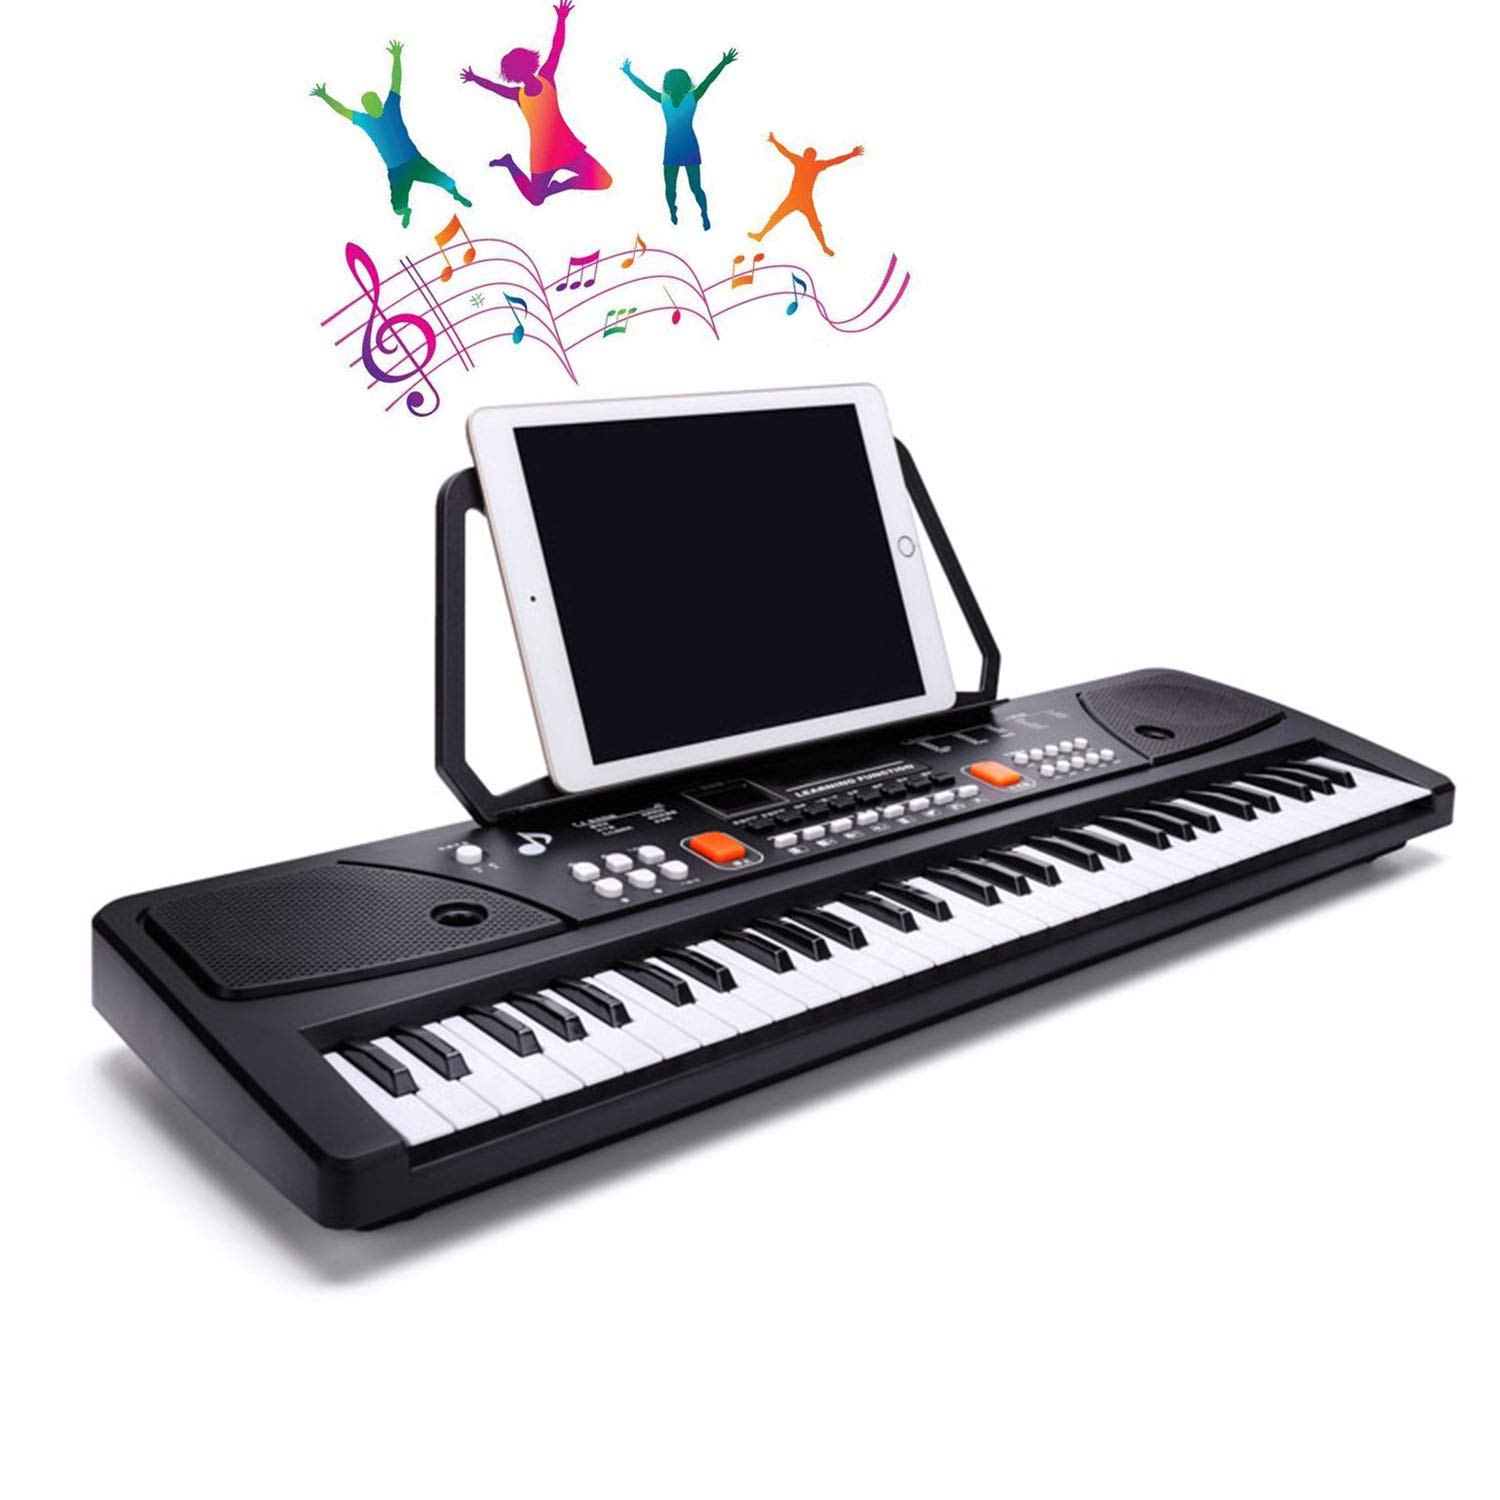 LYBALL Kids Keyboard 61 Keys Piano Multi-Function LED Musical Piano Rechargable Electronic Keyboard & Sheet Music Stand for Kids Birthday (61 Keys(24.8 Inch)) (61keys(24.8inch)) by LYBALL